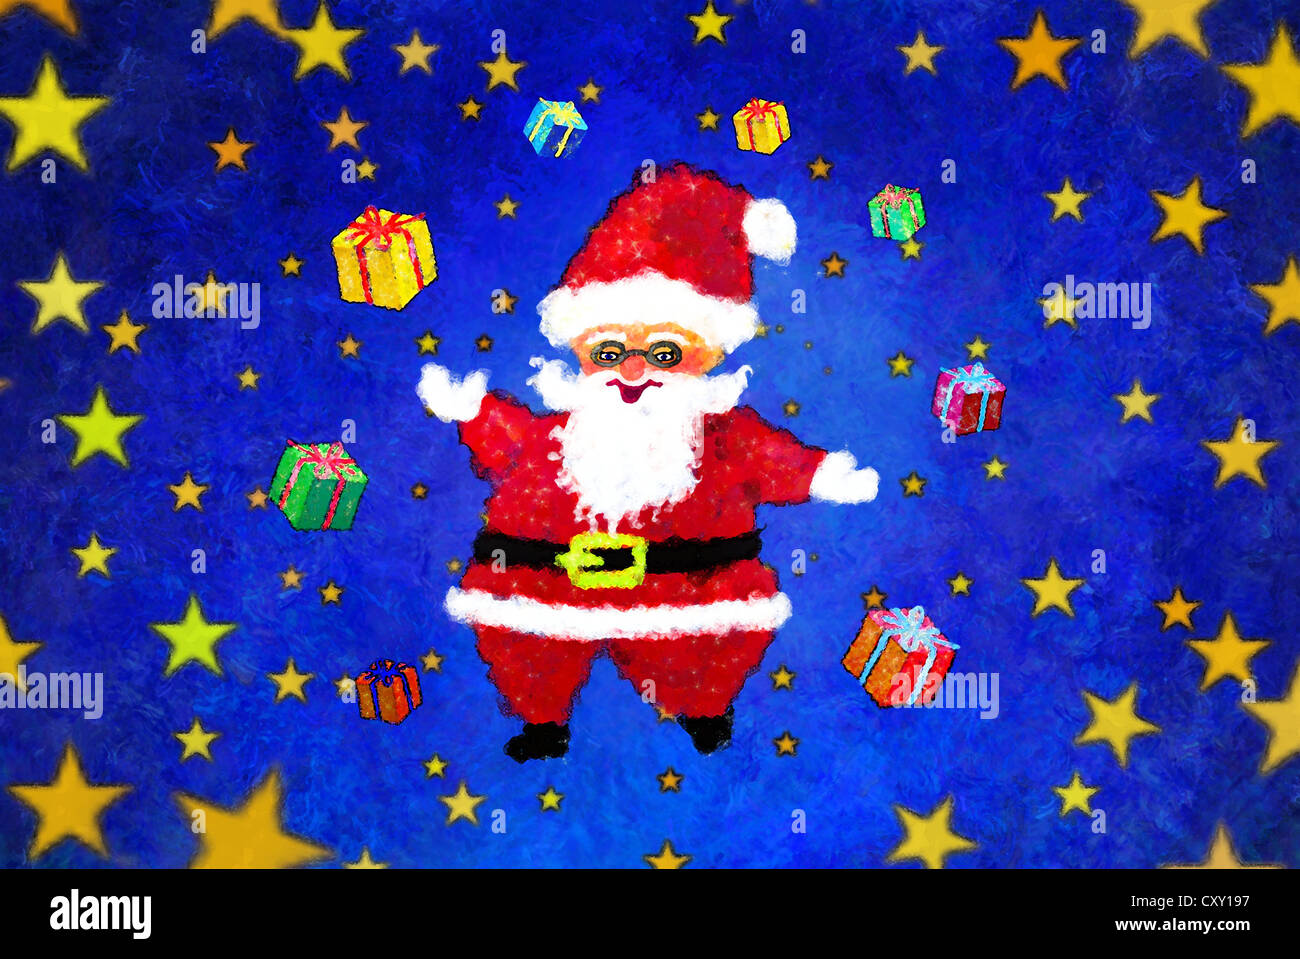 Santa Claus merrily juggling Christmas presents, illustration - Stock Image